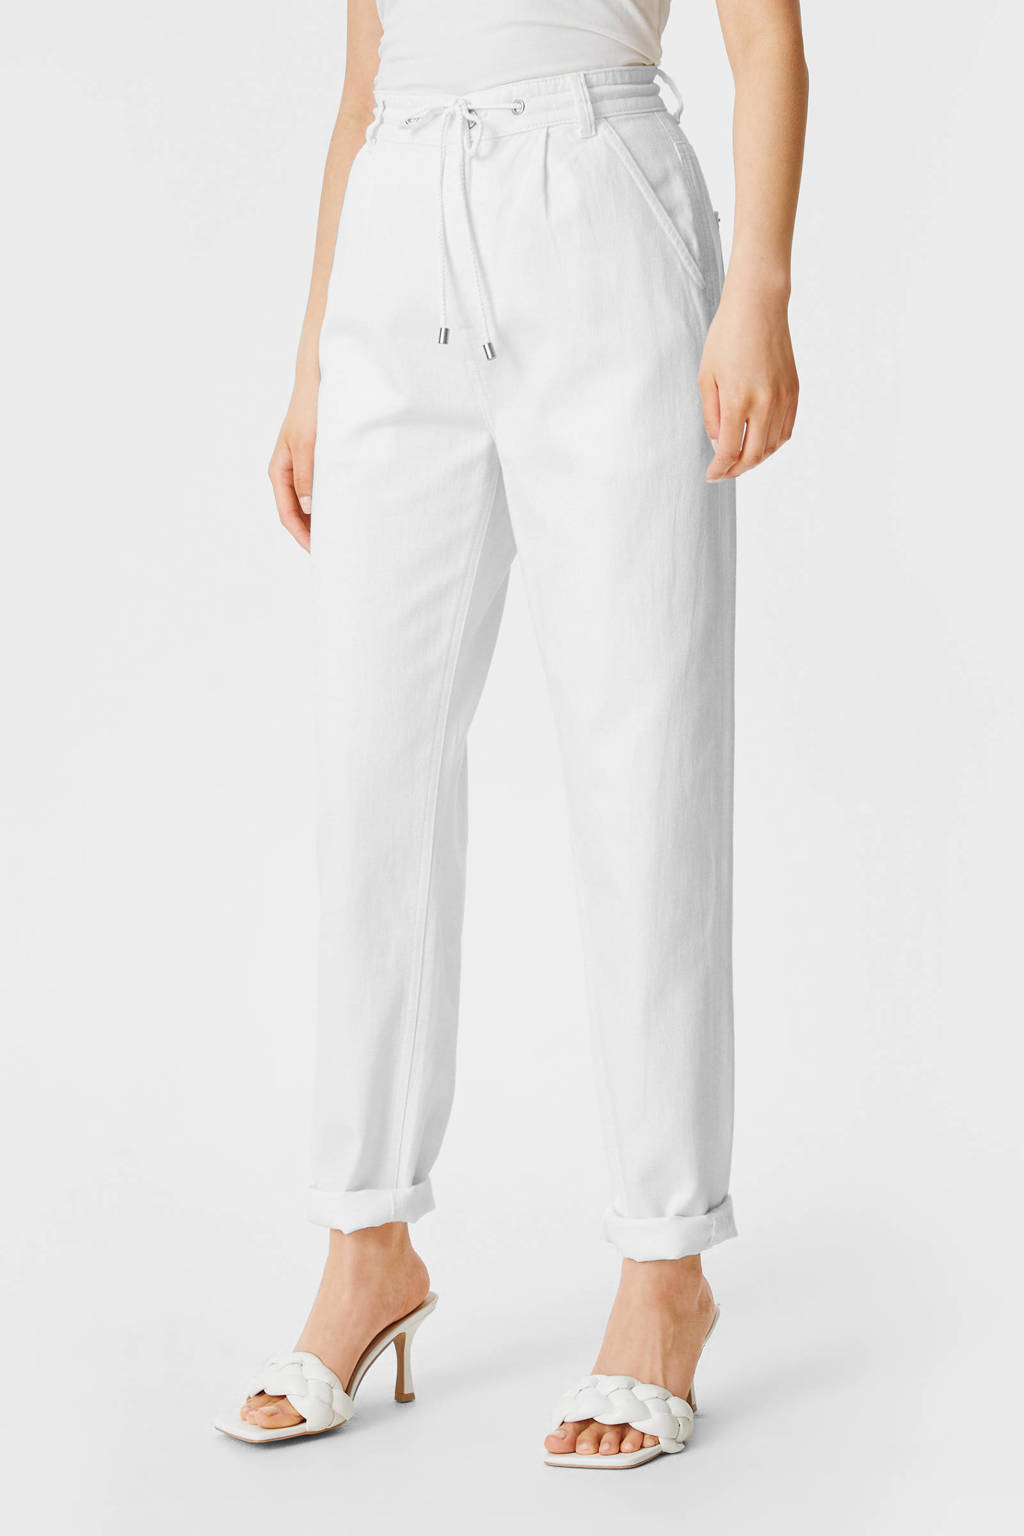 C&A Yessica high waist tapered fit pantalon wit, Wit